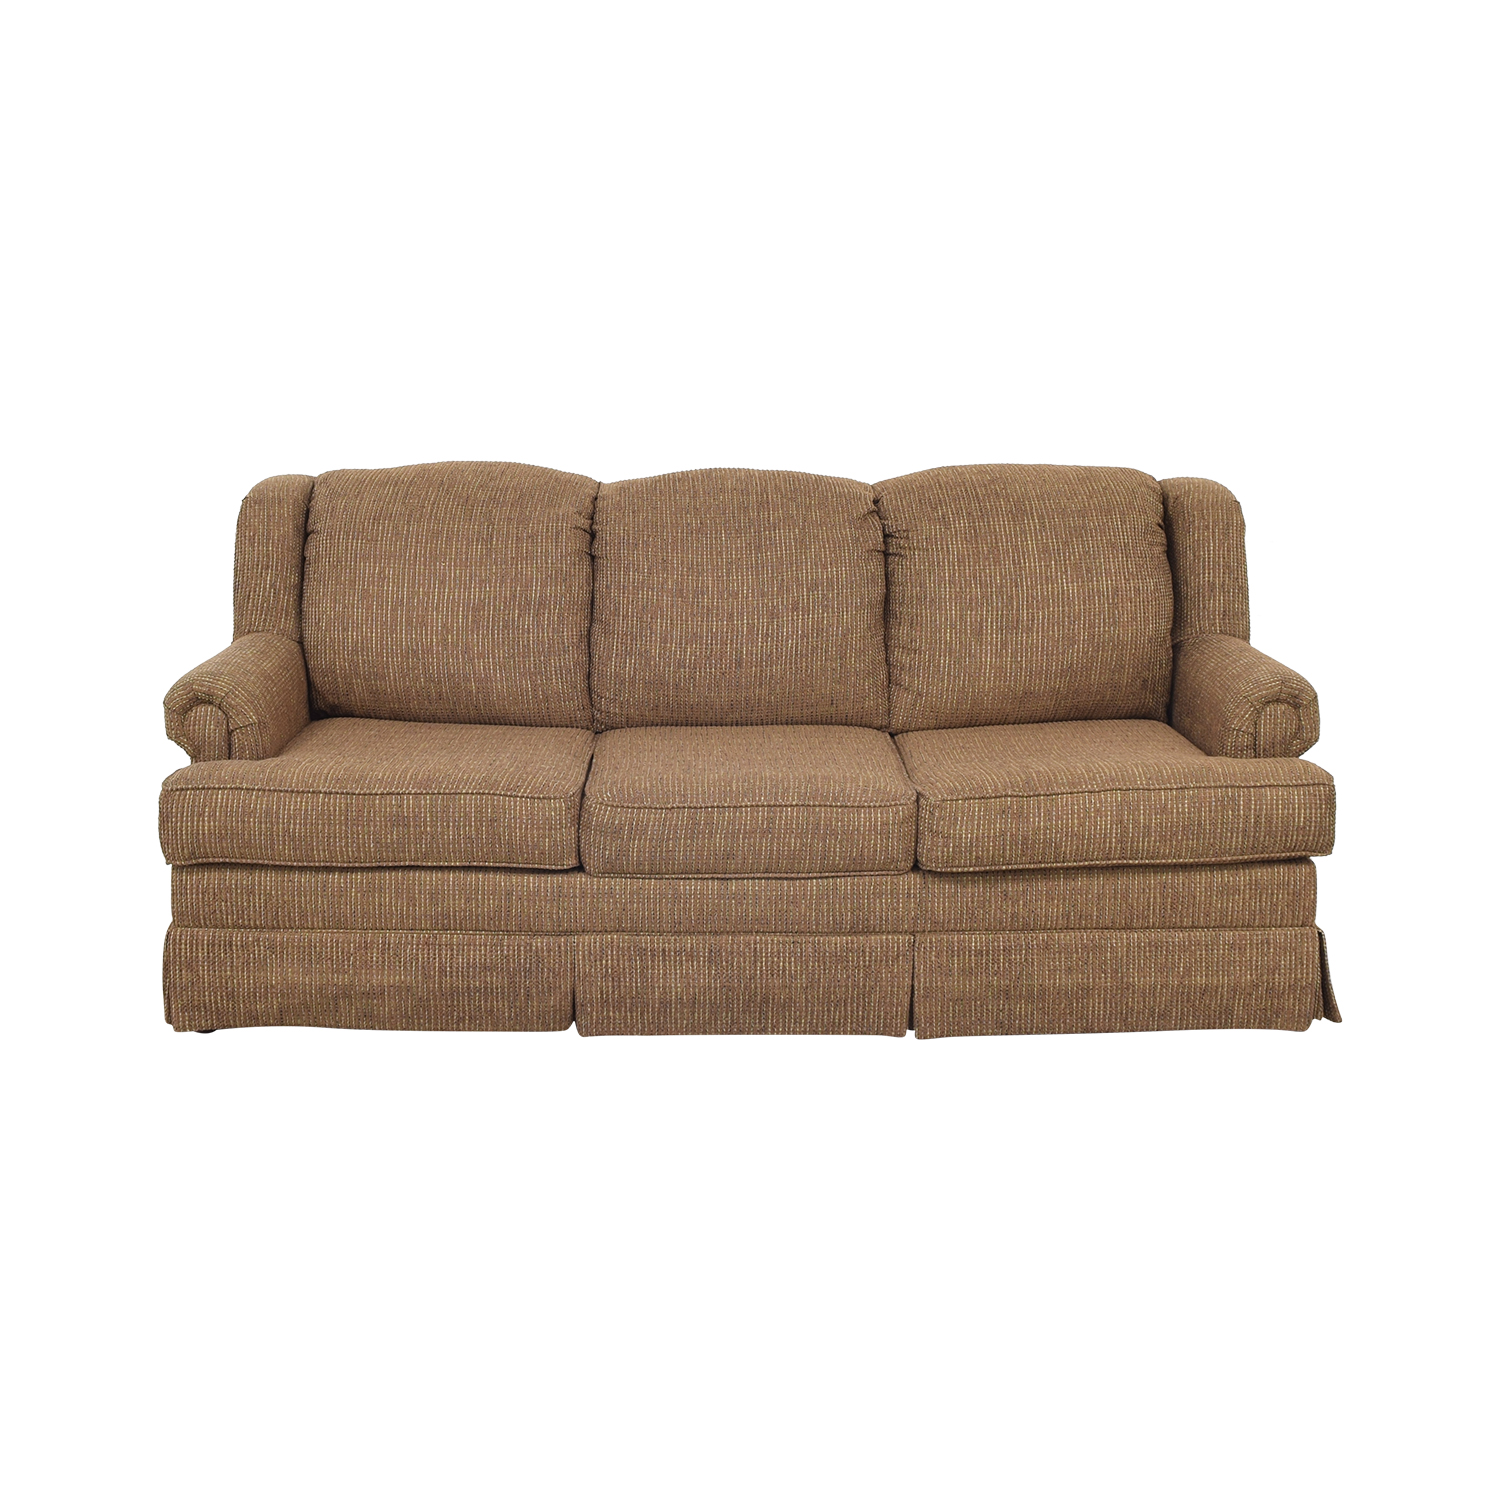 Klaussner Three Cushion Sofa sale